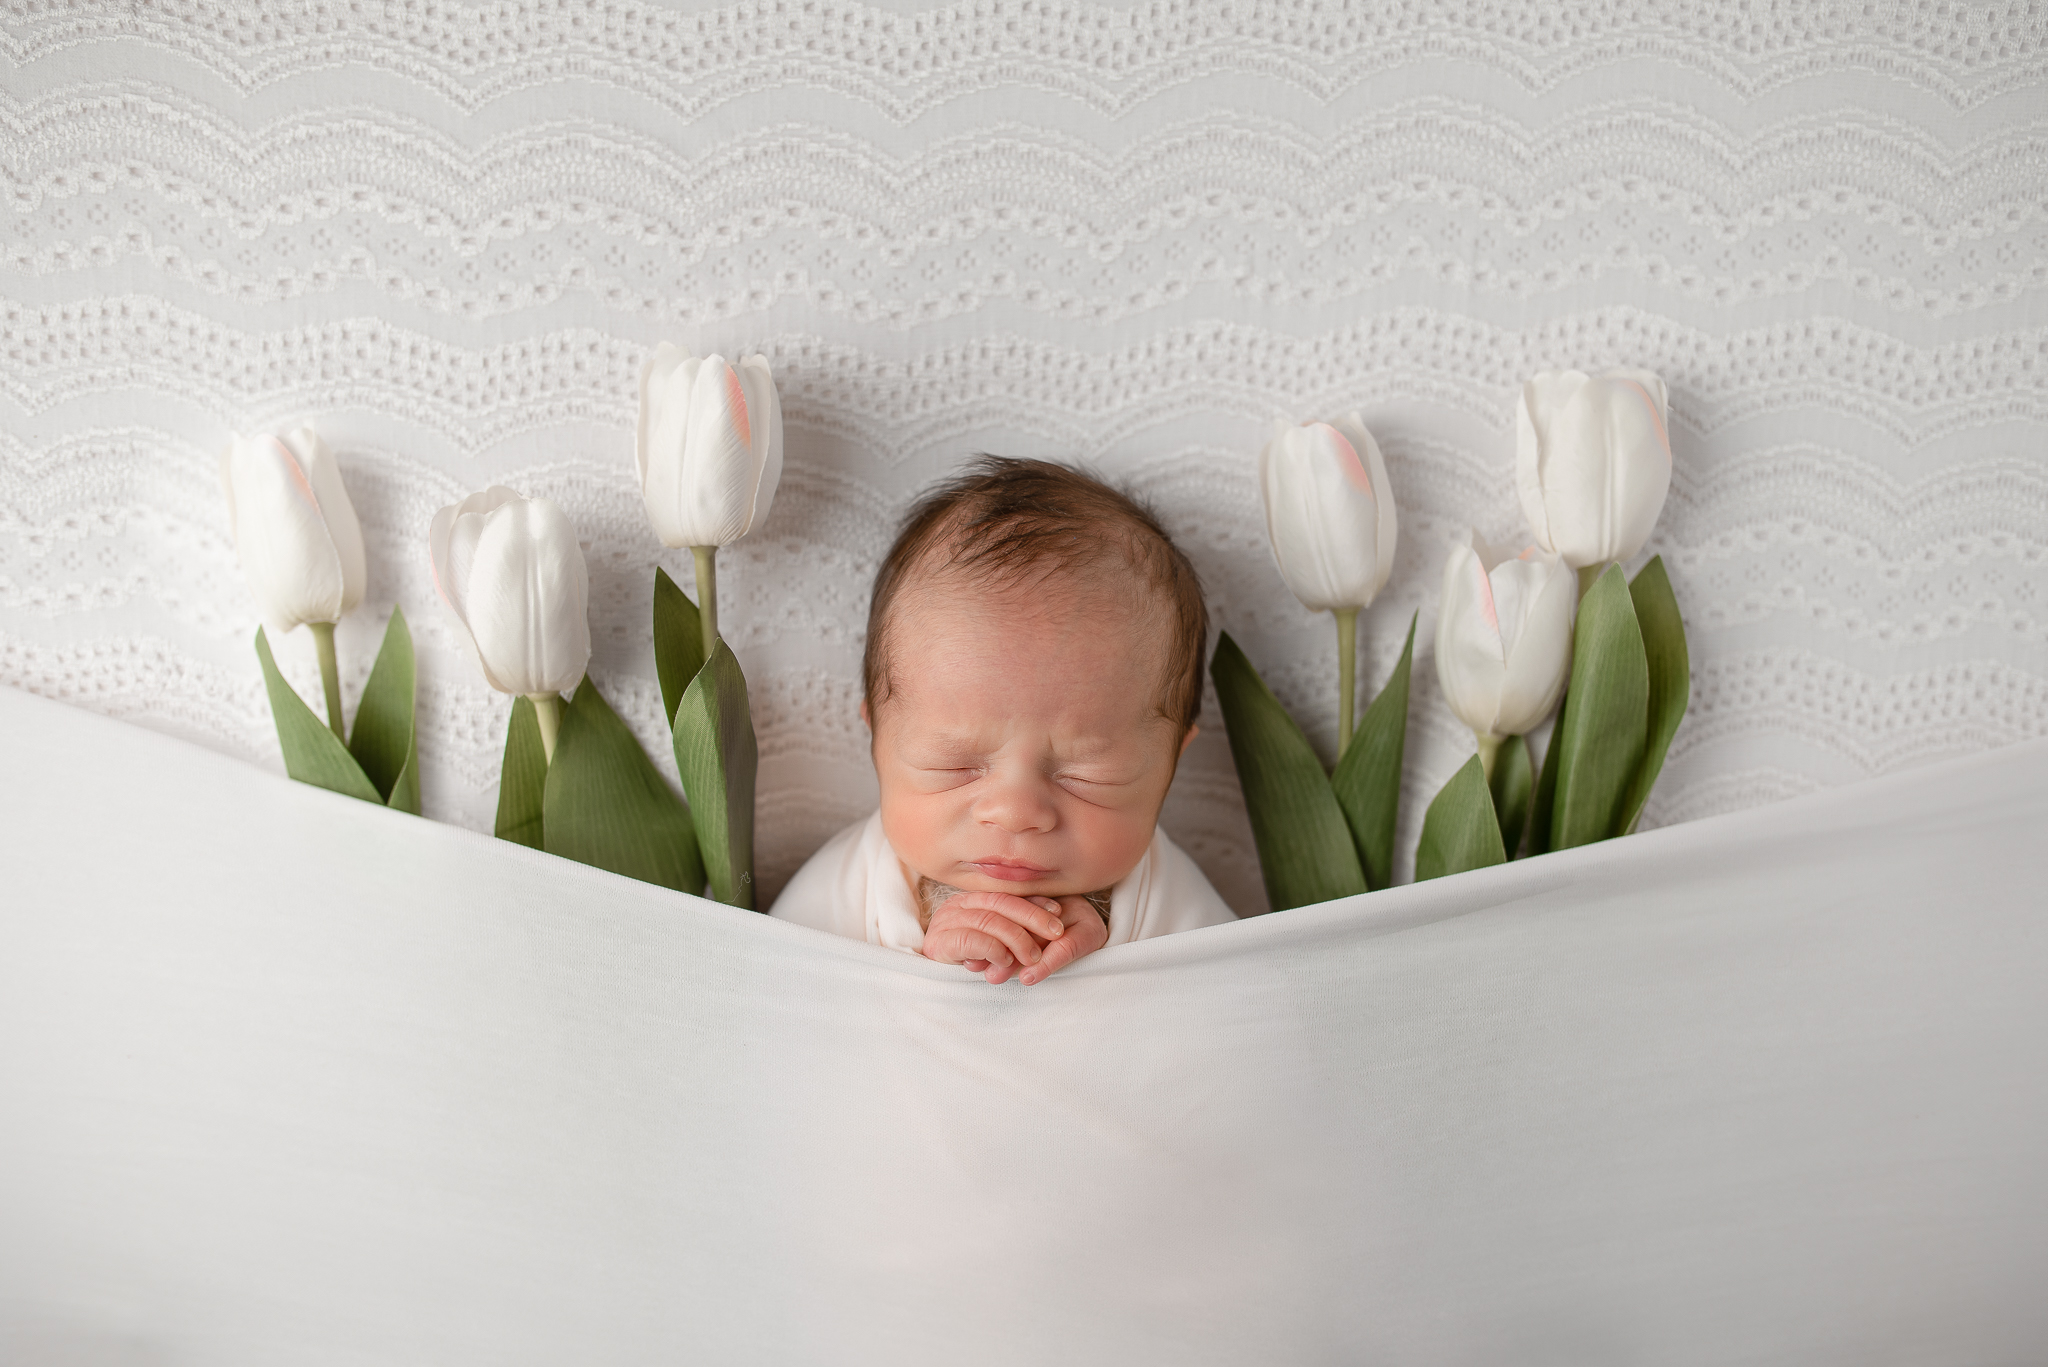 Newborn71NaomiLuciennePhotography032019-Edit.jpg